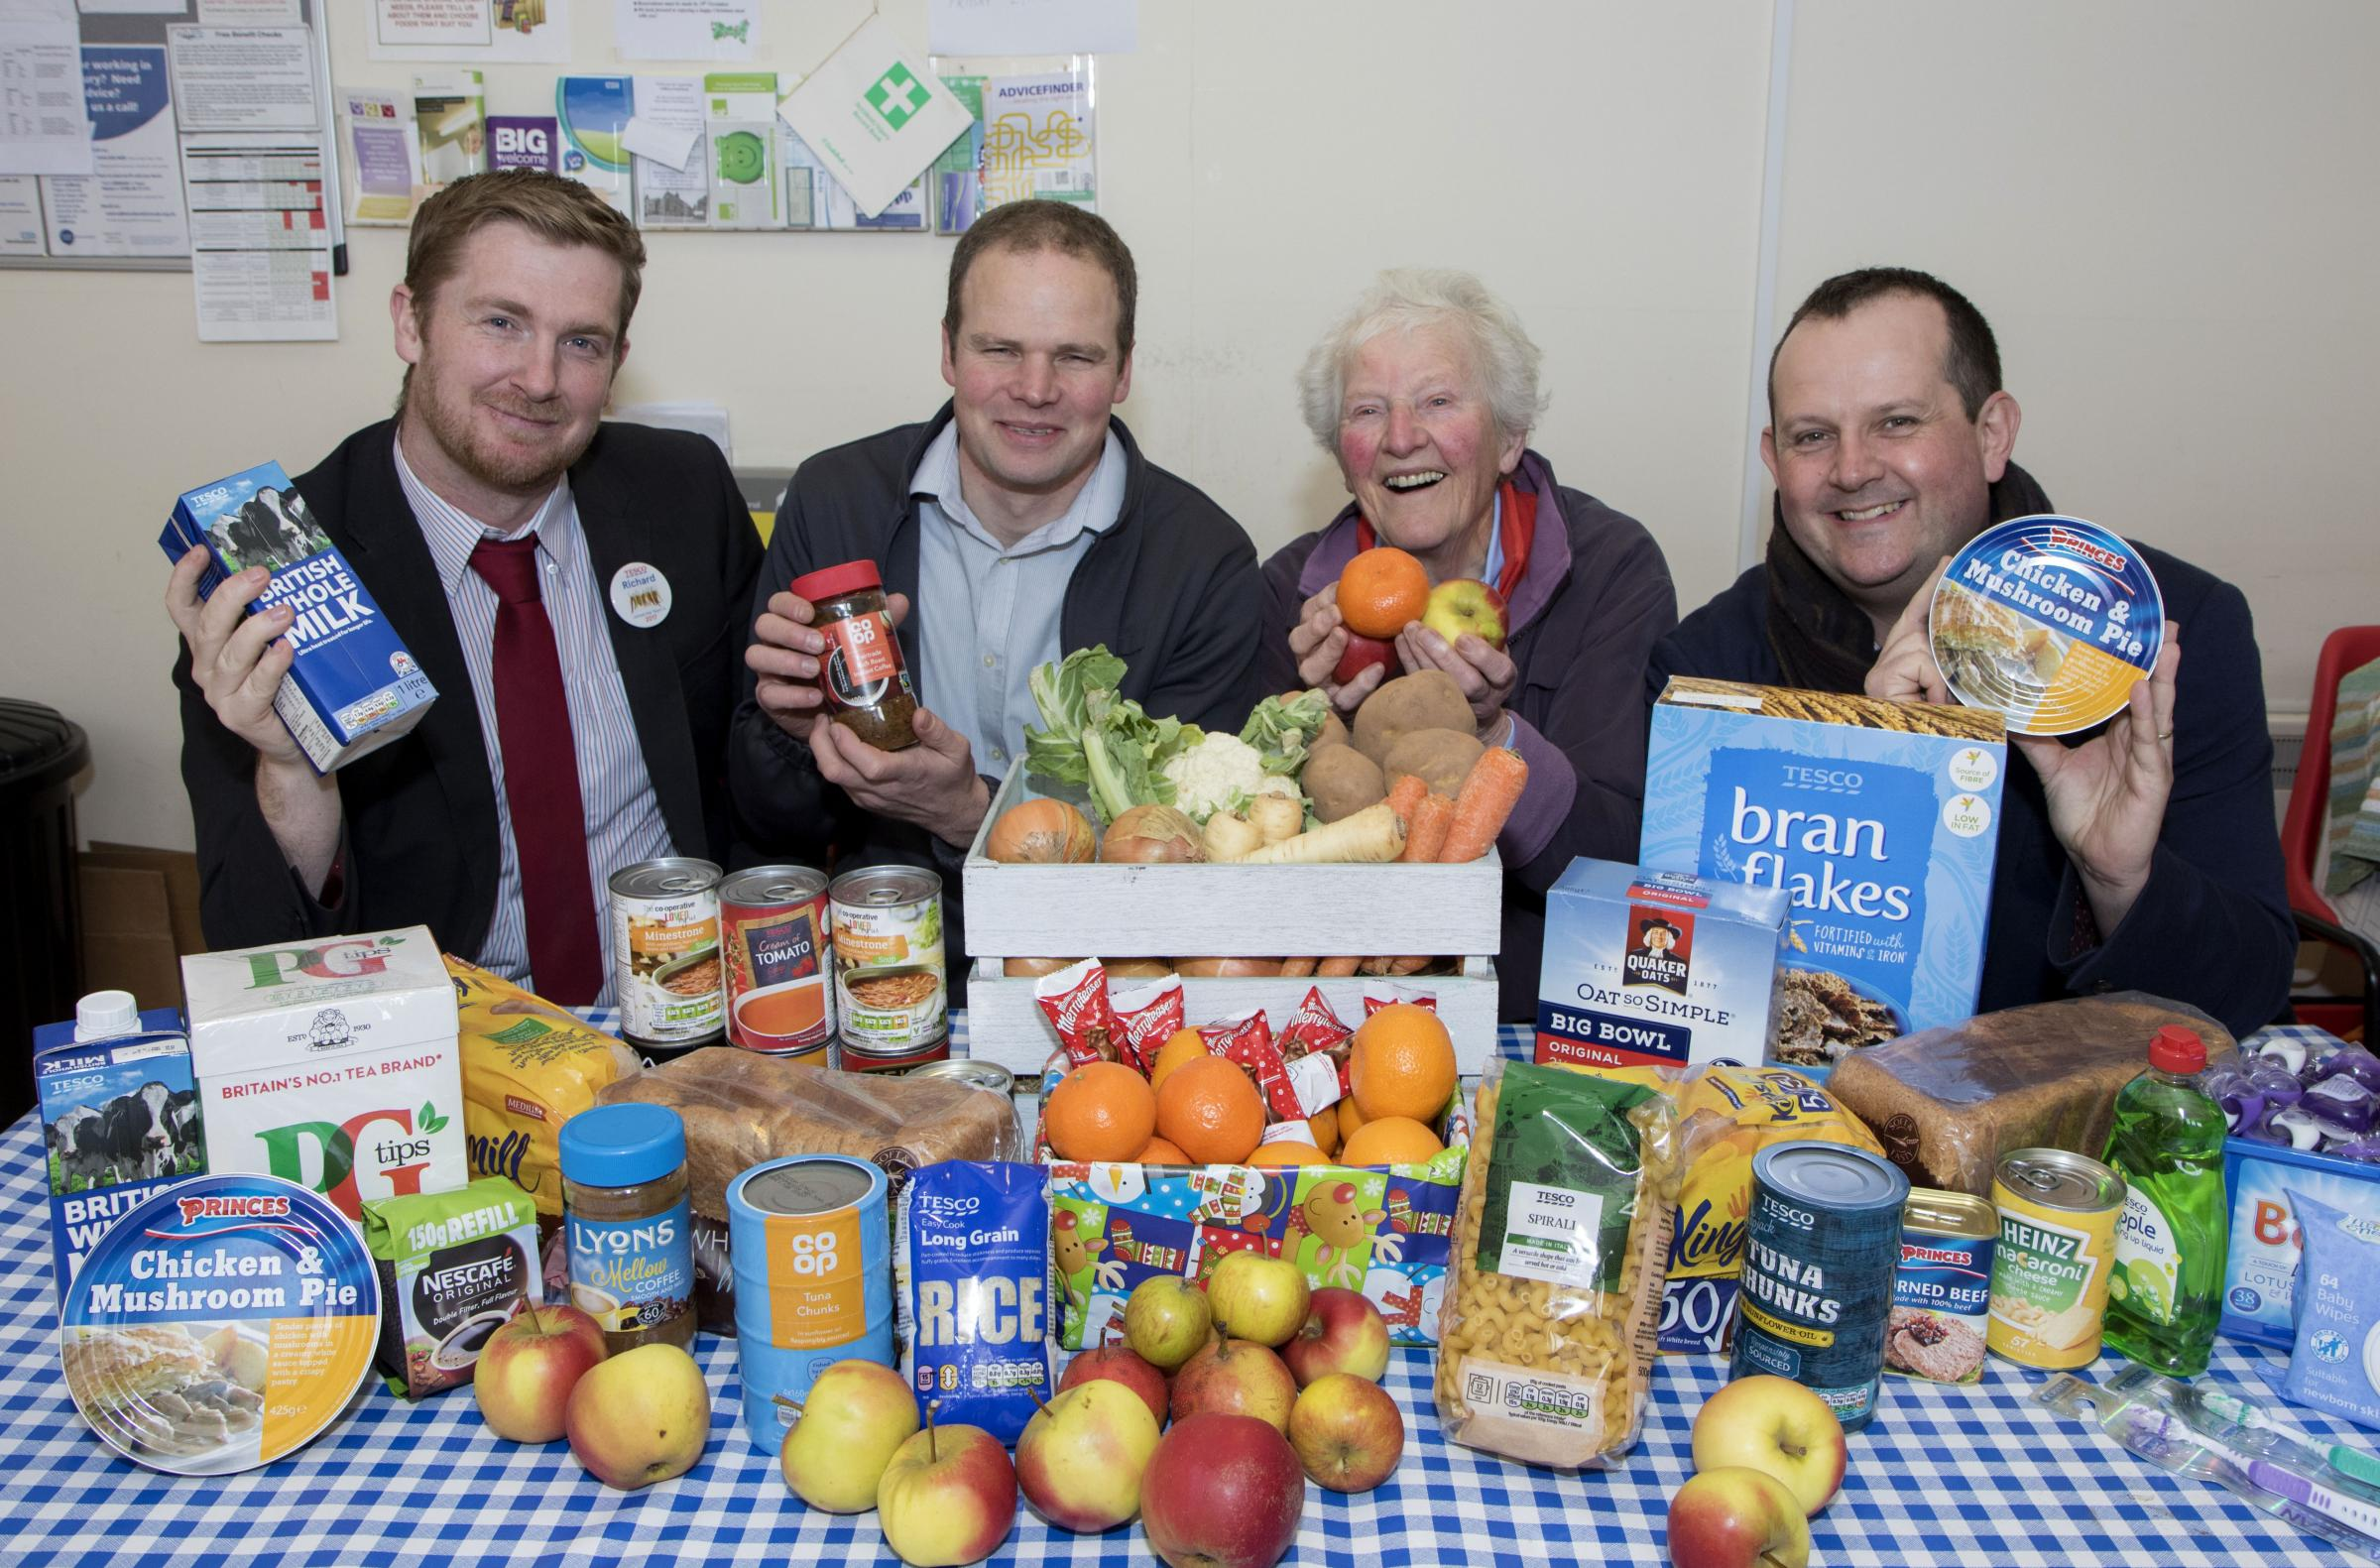 WN_191217_06 Paul Jackson 19.12.17 Ledbury - Ledbury Foodbank has seen a seasonal rise in the number of users. From left - Richard Barnes, fresh trade manager, Tesco, Richard Brixley, Co-op store manager and foodbank volunteers..